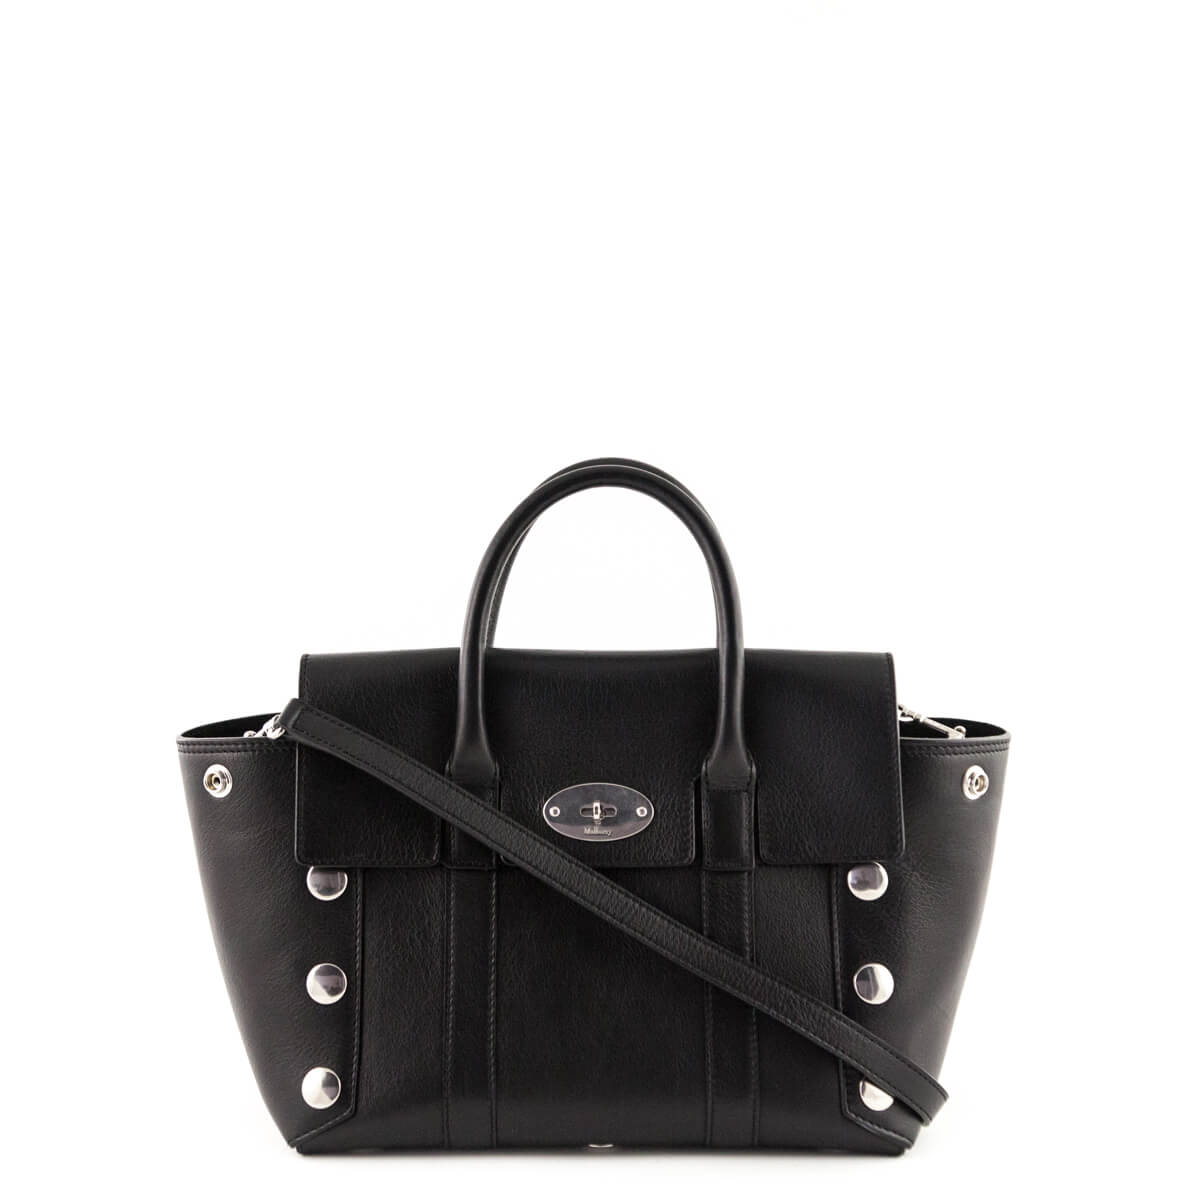 1d7ba56f242 Mulberry Black Calfskin Small Studded New Bayswater Tote - LOVE that BAG -  Preowned Authentic Designer ...